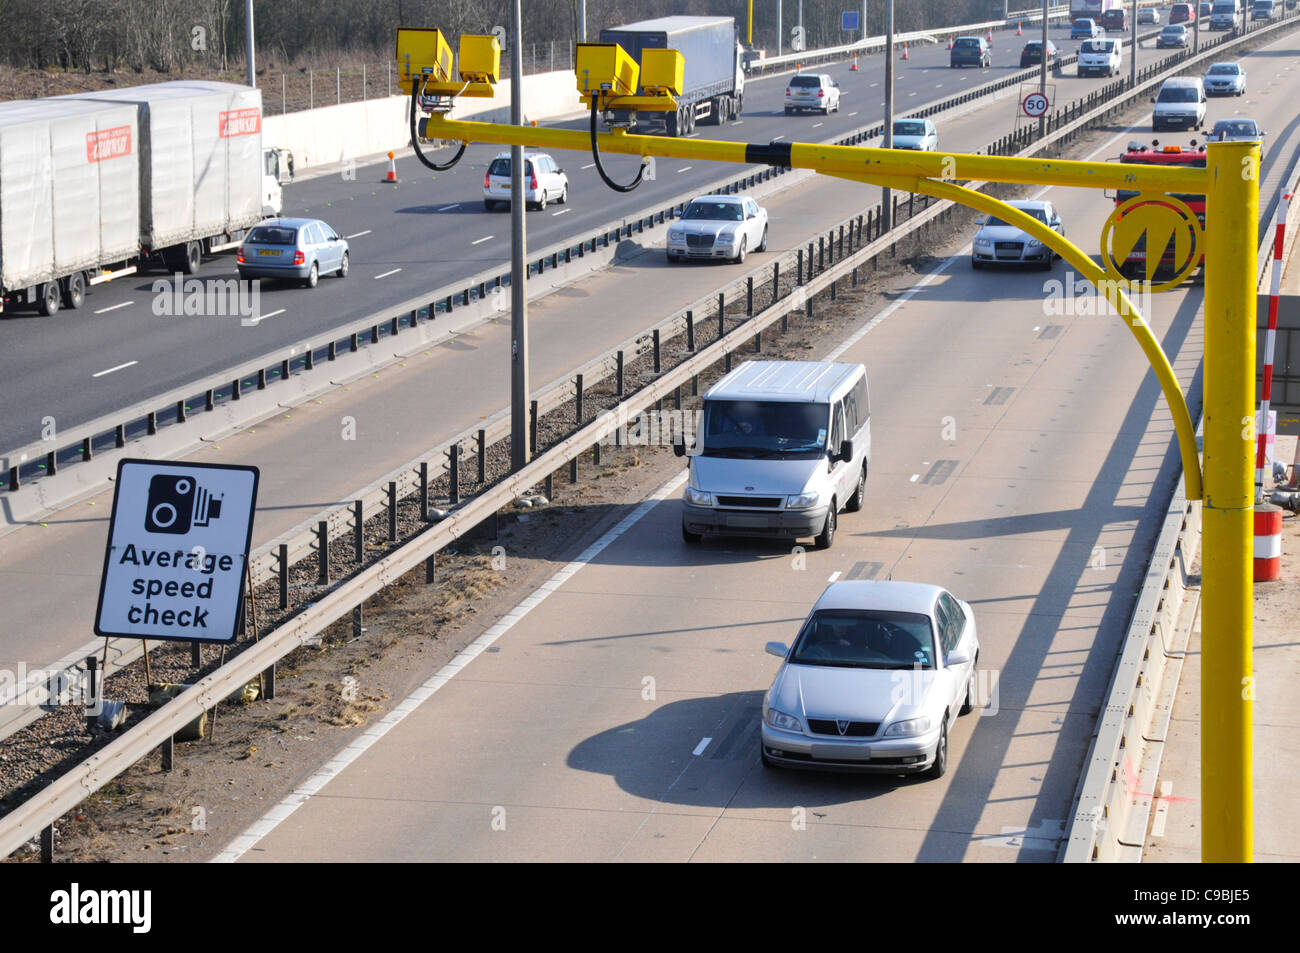 Average speed cameras & sign on the M25 motorway during contra flow operation & because of road works widening - Stock Image